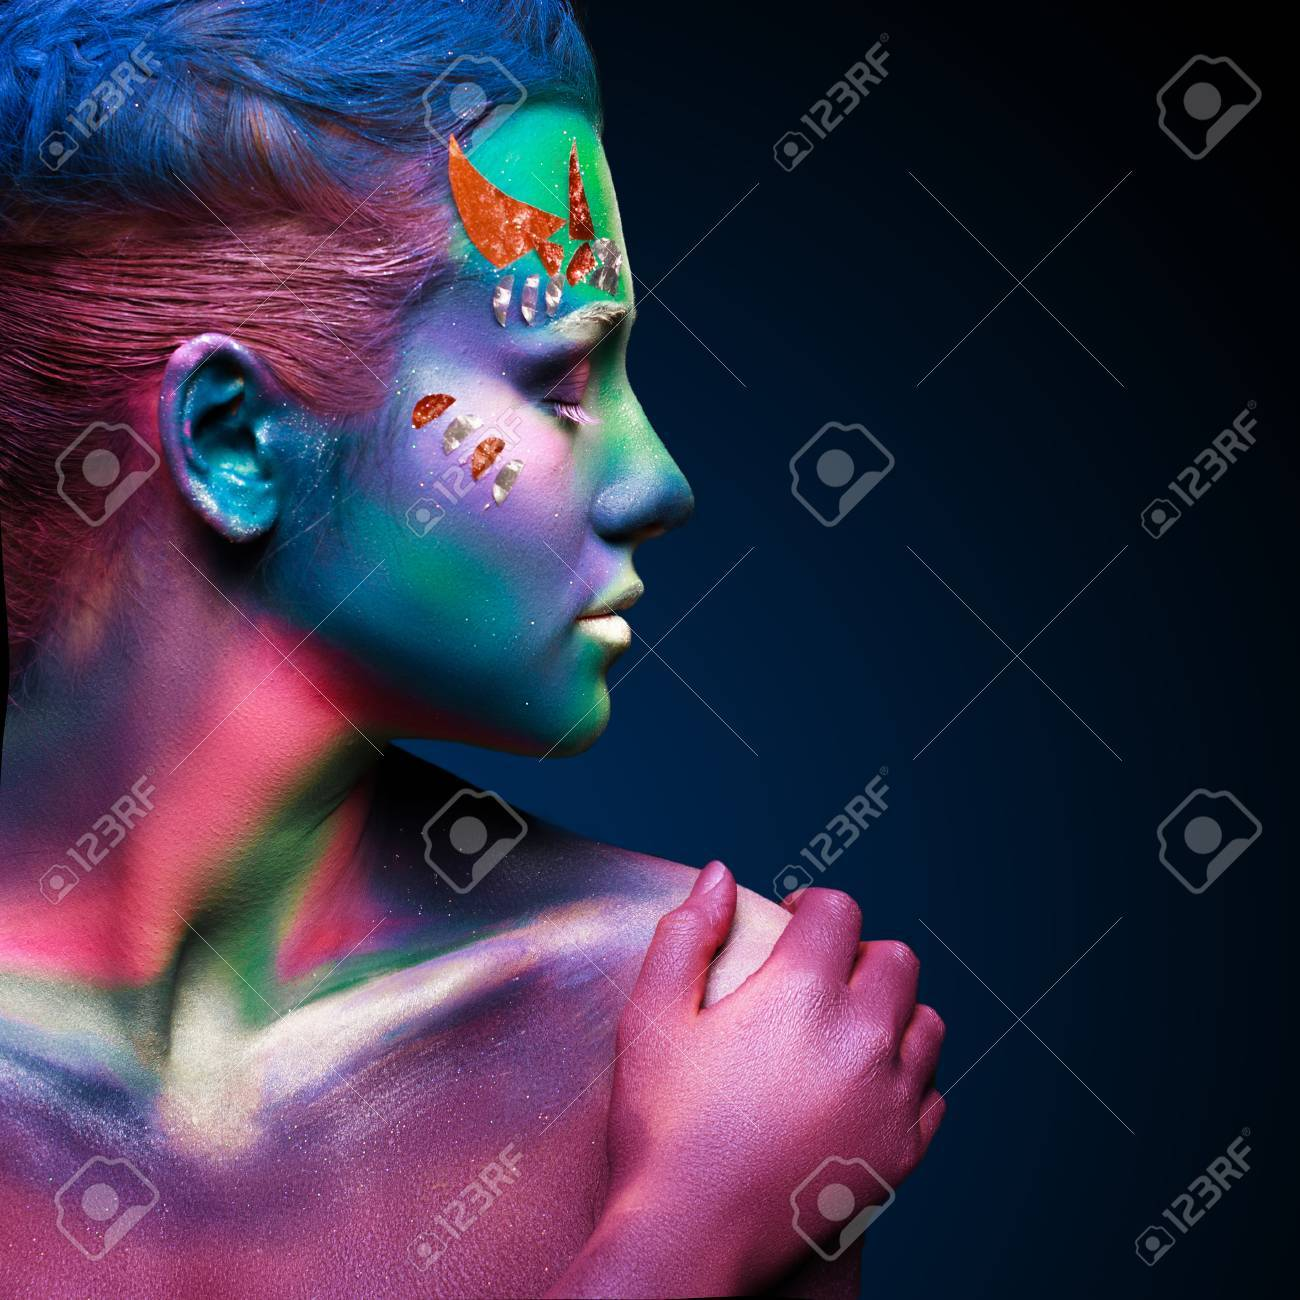 Portrait of beautiful woman with body art. underwater concept Stock Photo - 29169407